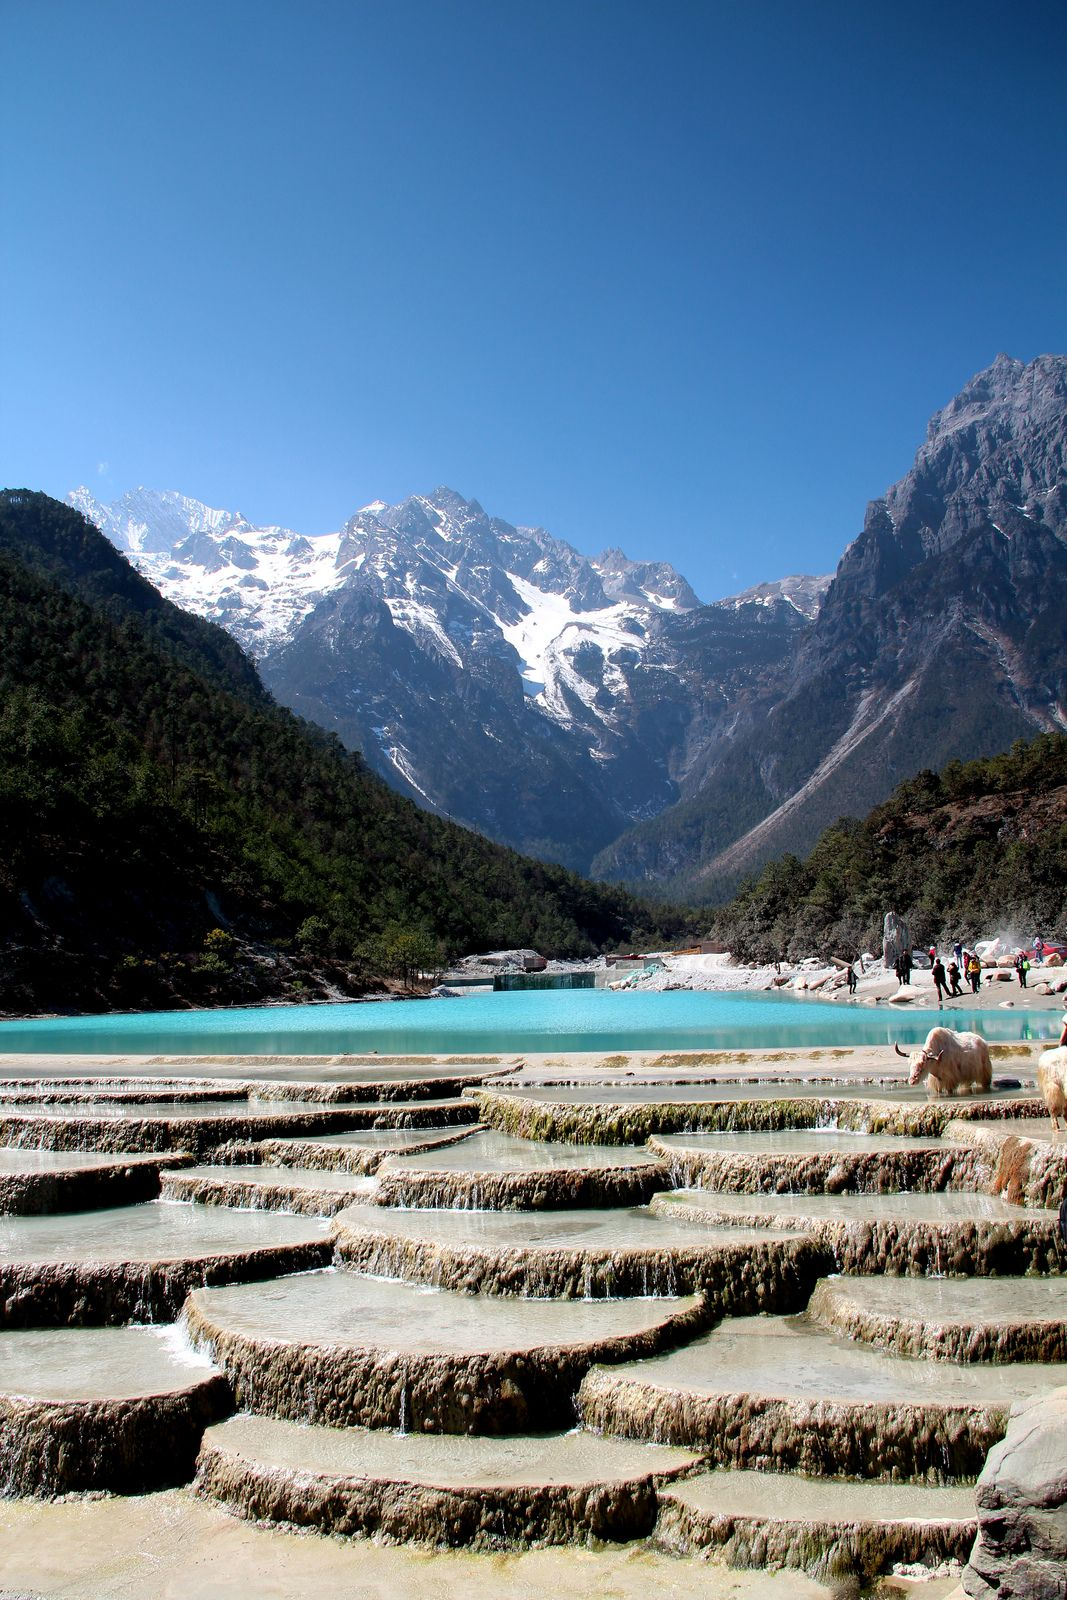 Pakistanische Küche Wiki Pin By Kathi On Blue Moon Valley China Lijiang China China Travel